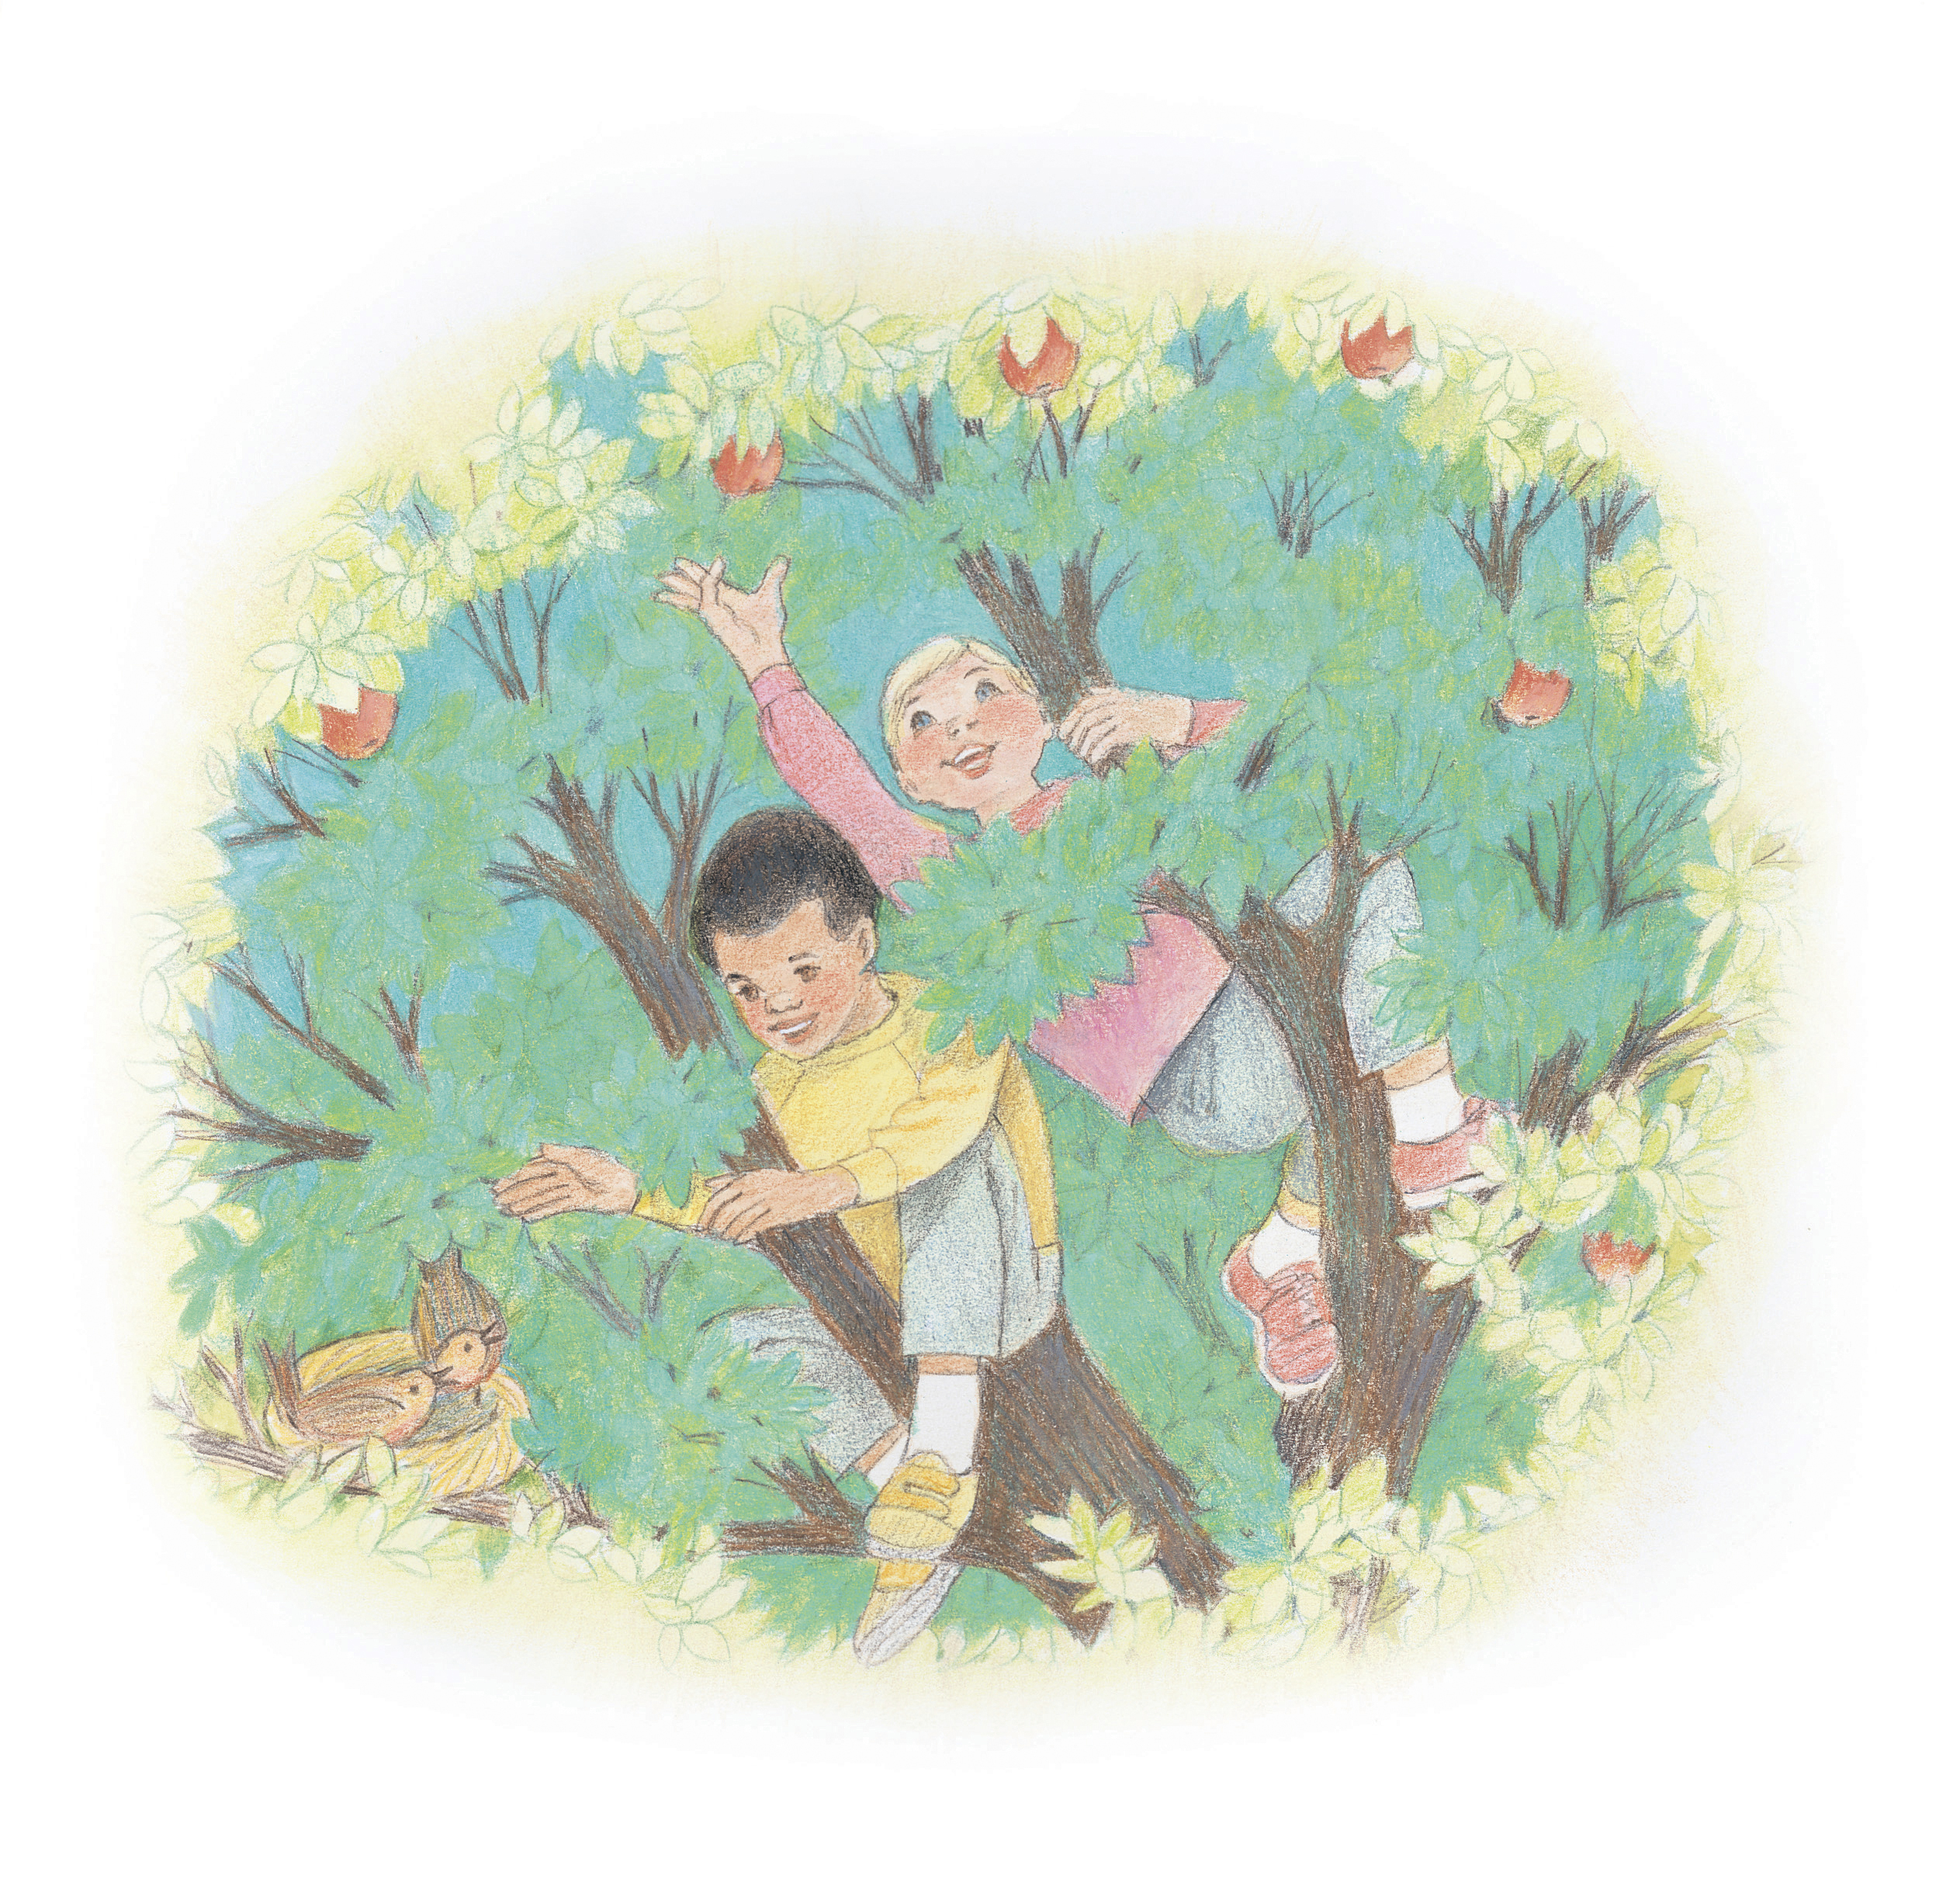 """Two children climbing a tree and picking apples. From the Children's Songbook, page 240, """"In the Leafy Treetops""""; watercolor illustration by Virginia Sargent."""